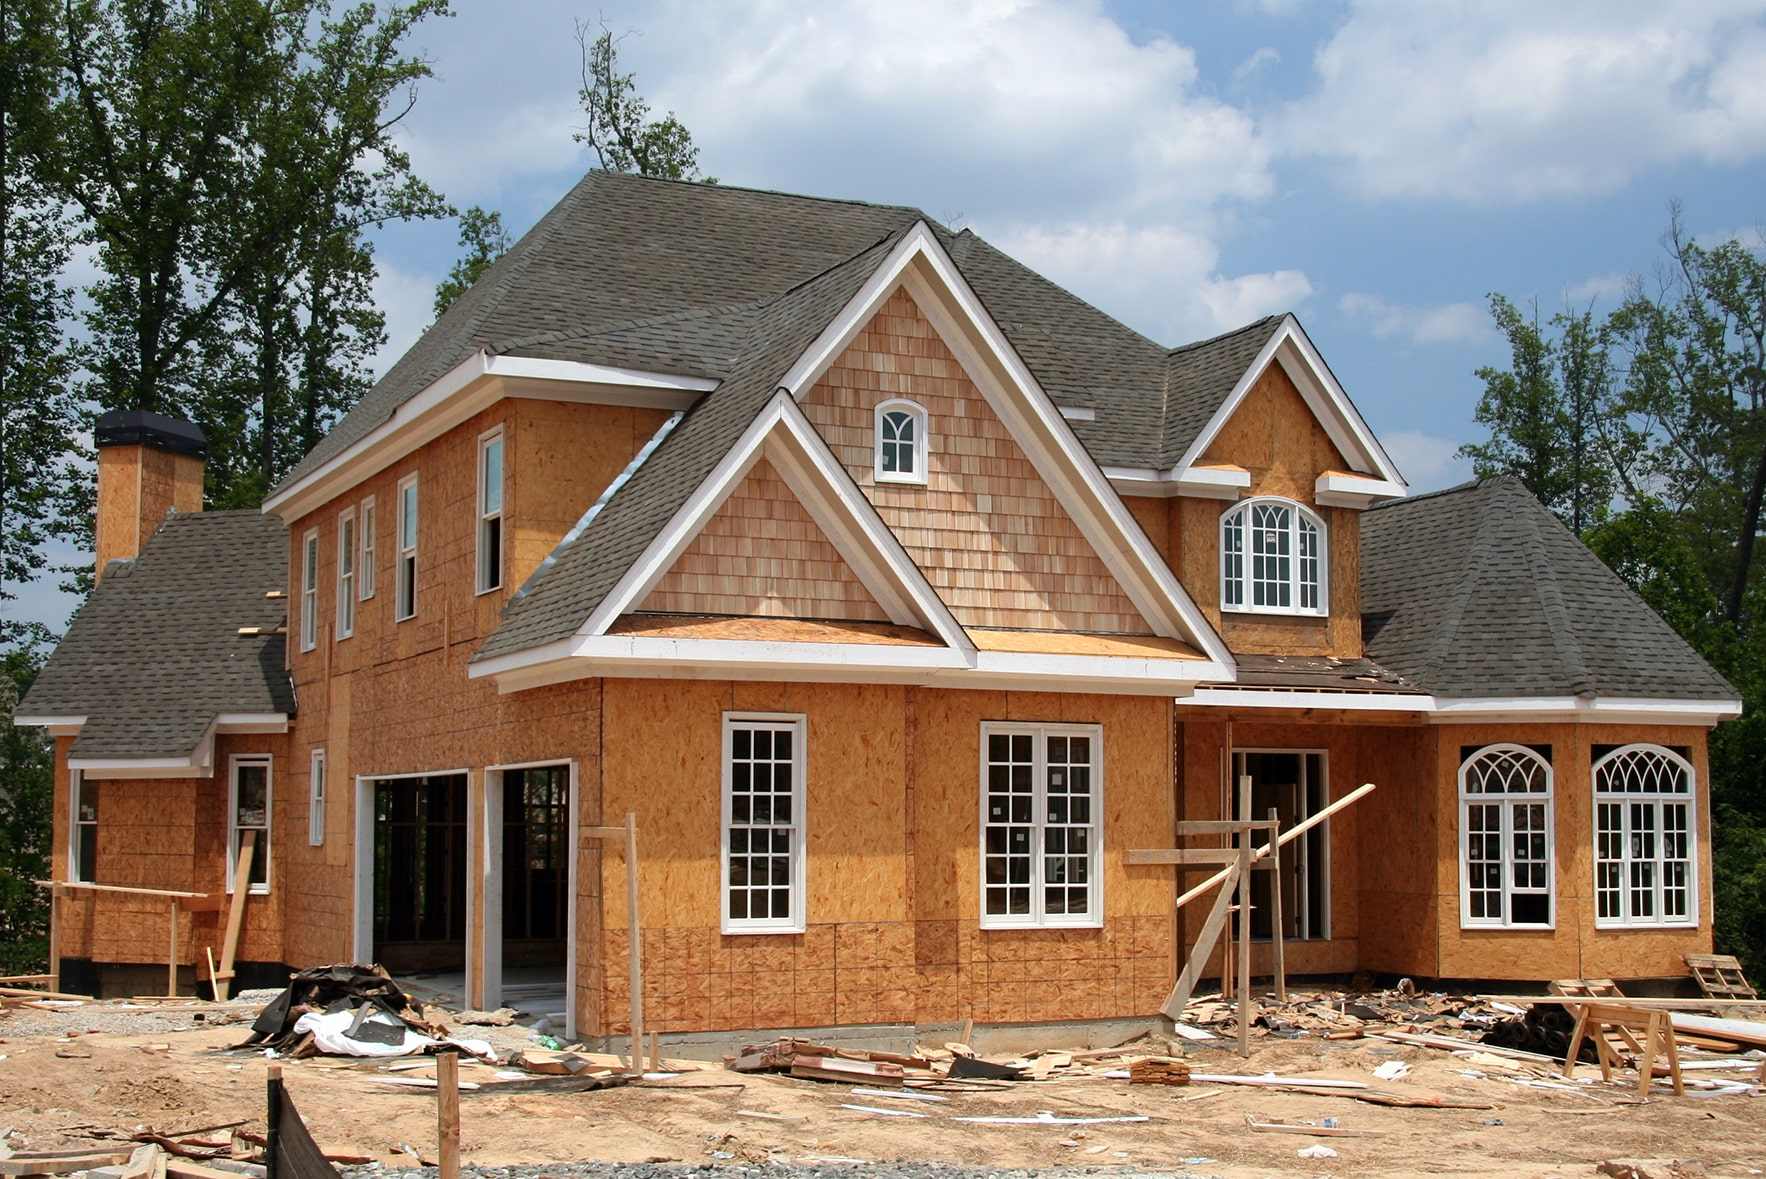 A custom home builder in Traverse City, MI